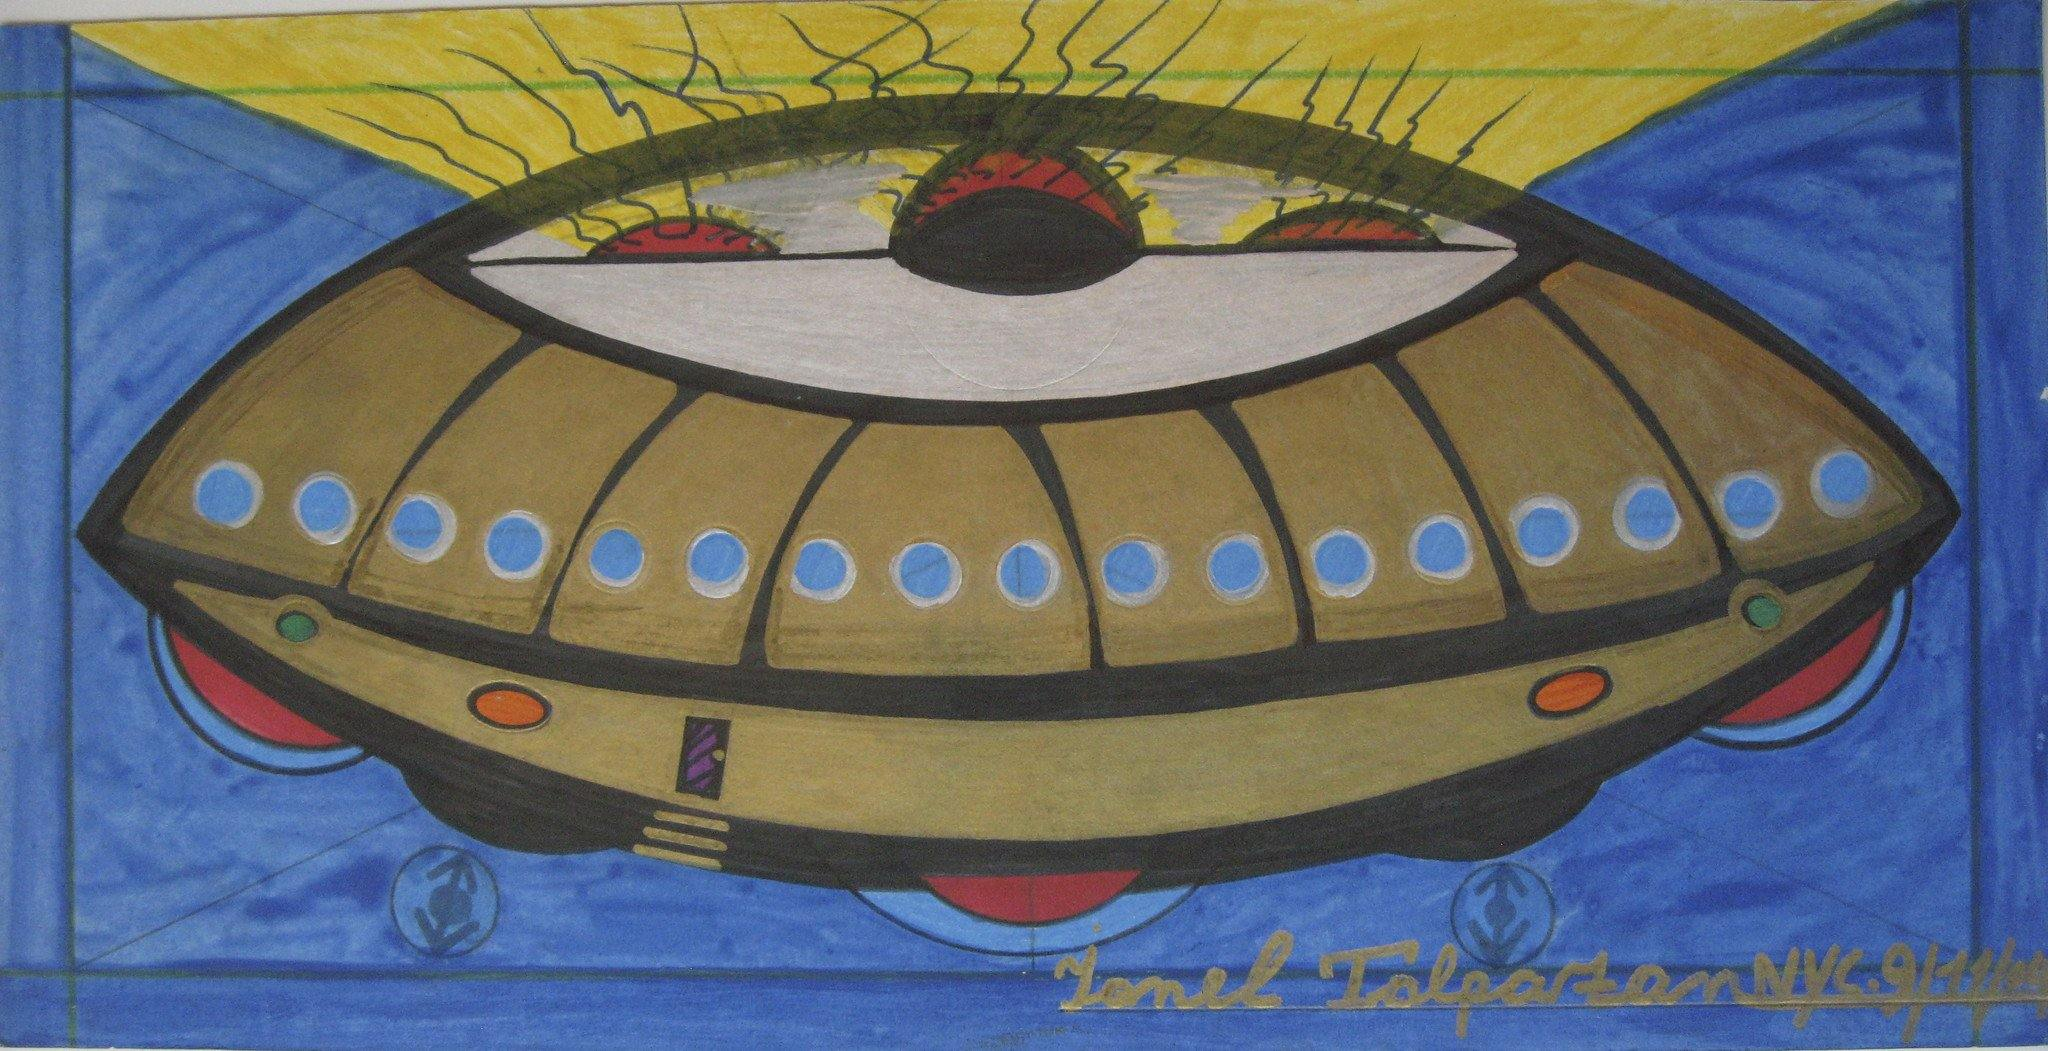 Golden UFO Exterior, yellow beams